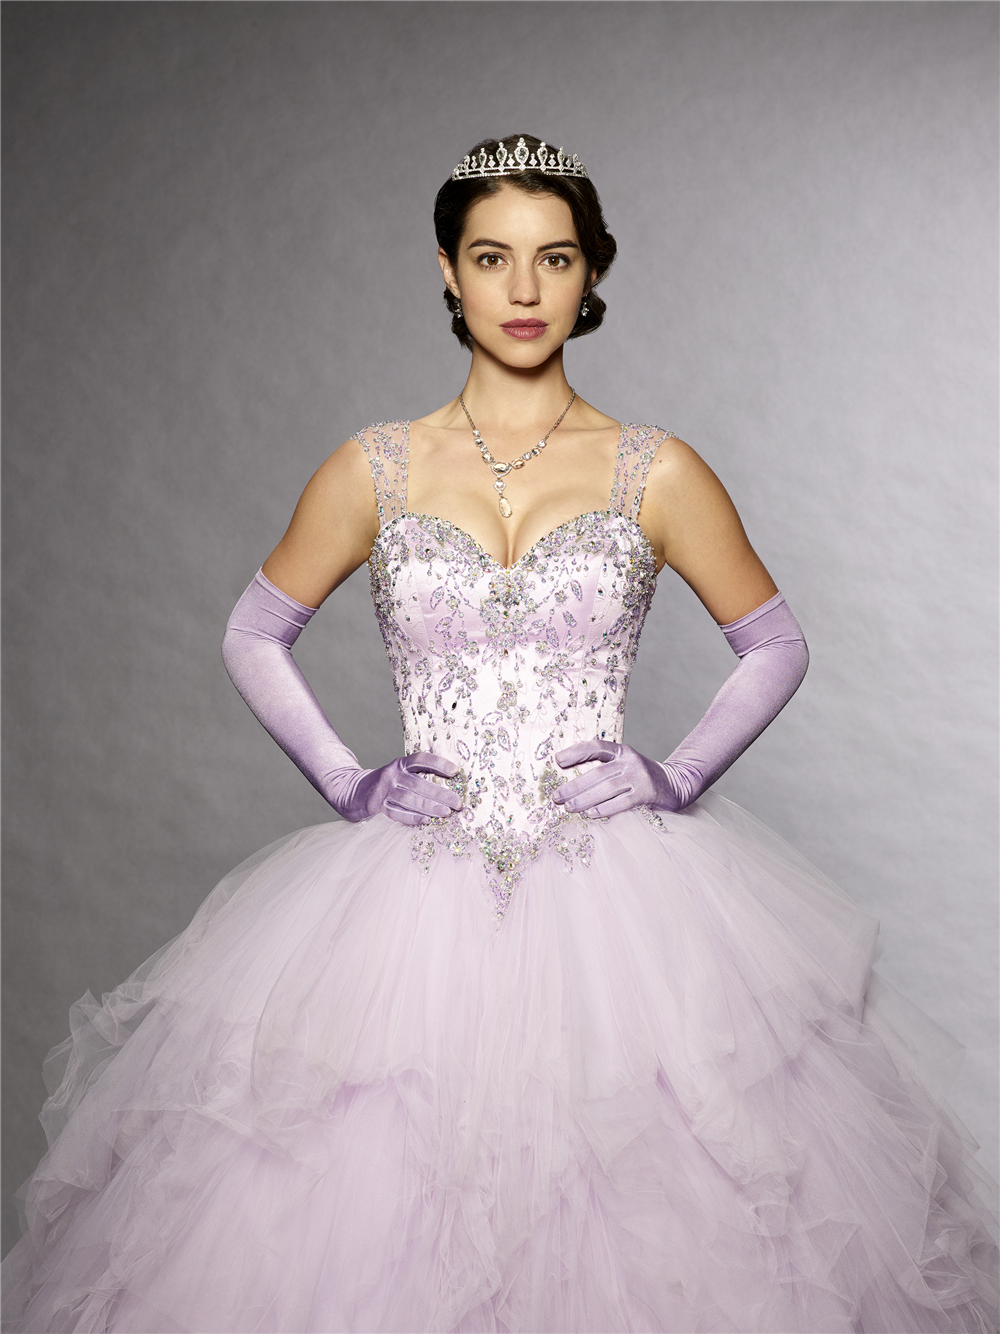 Drizella (Once Upon a Time)